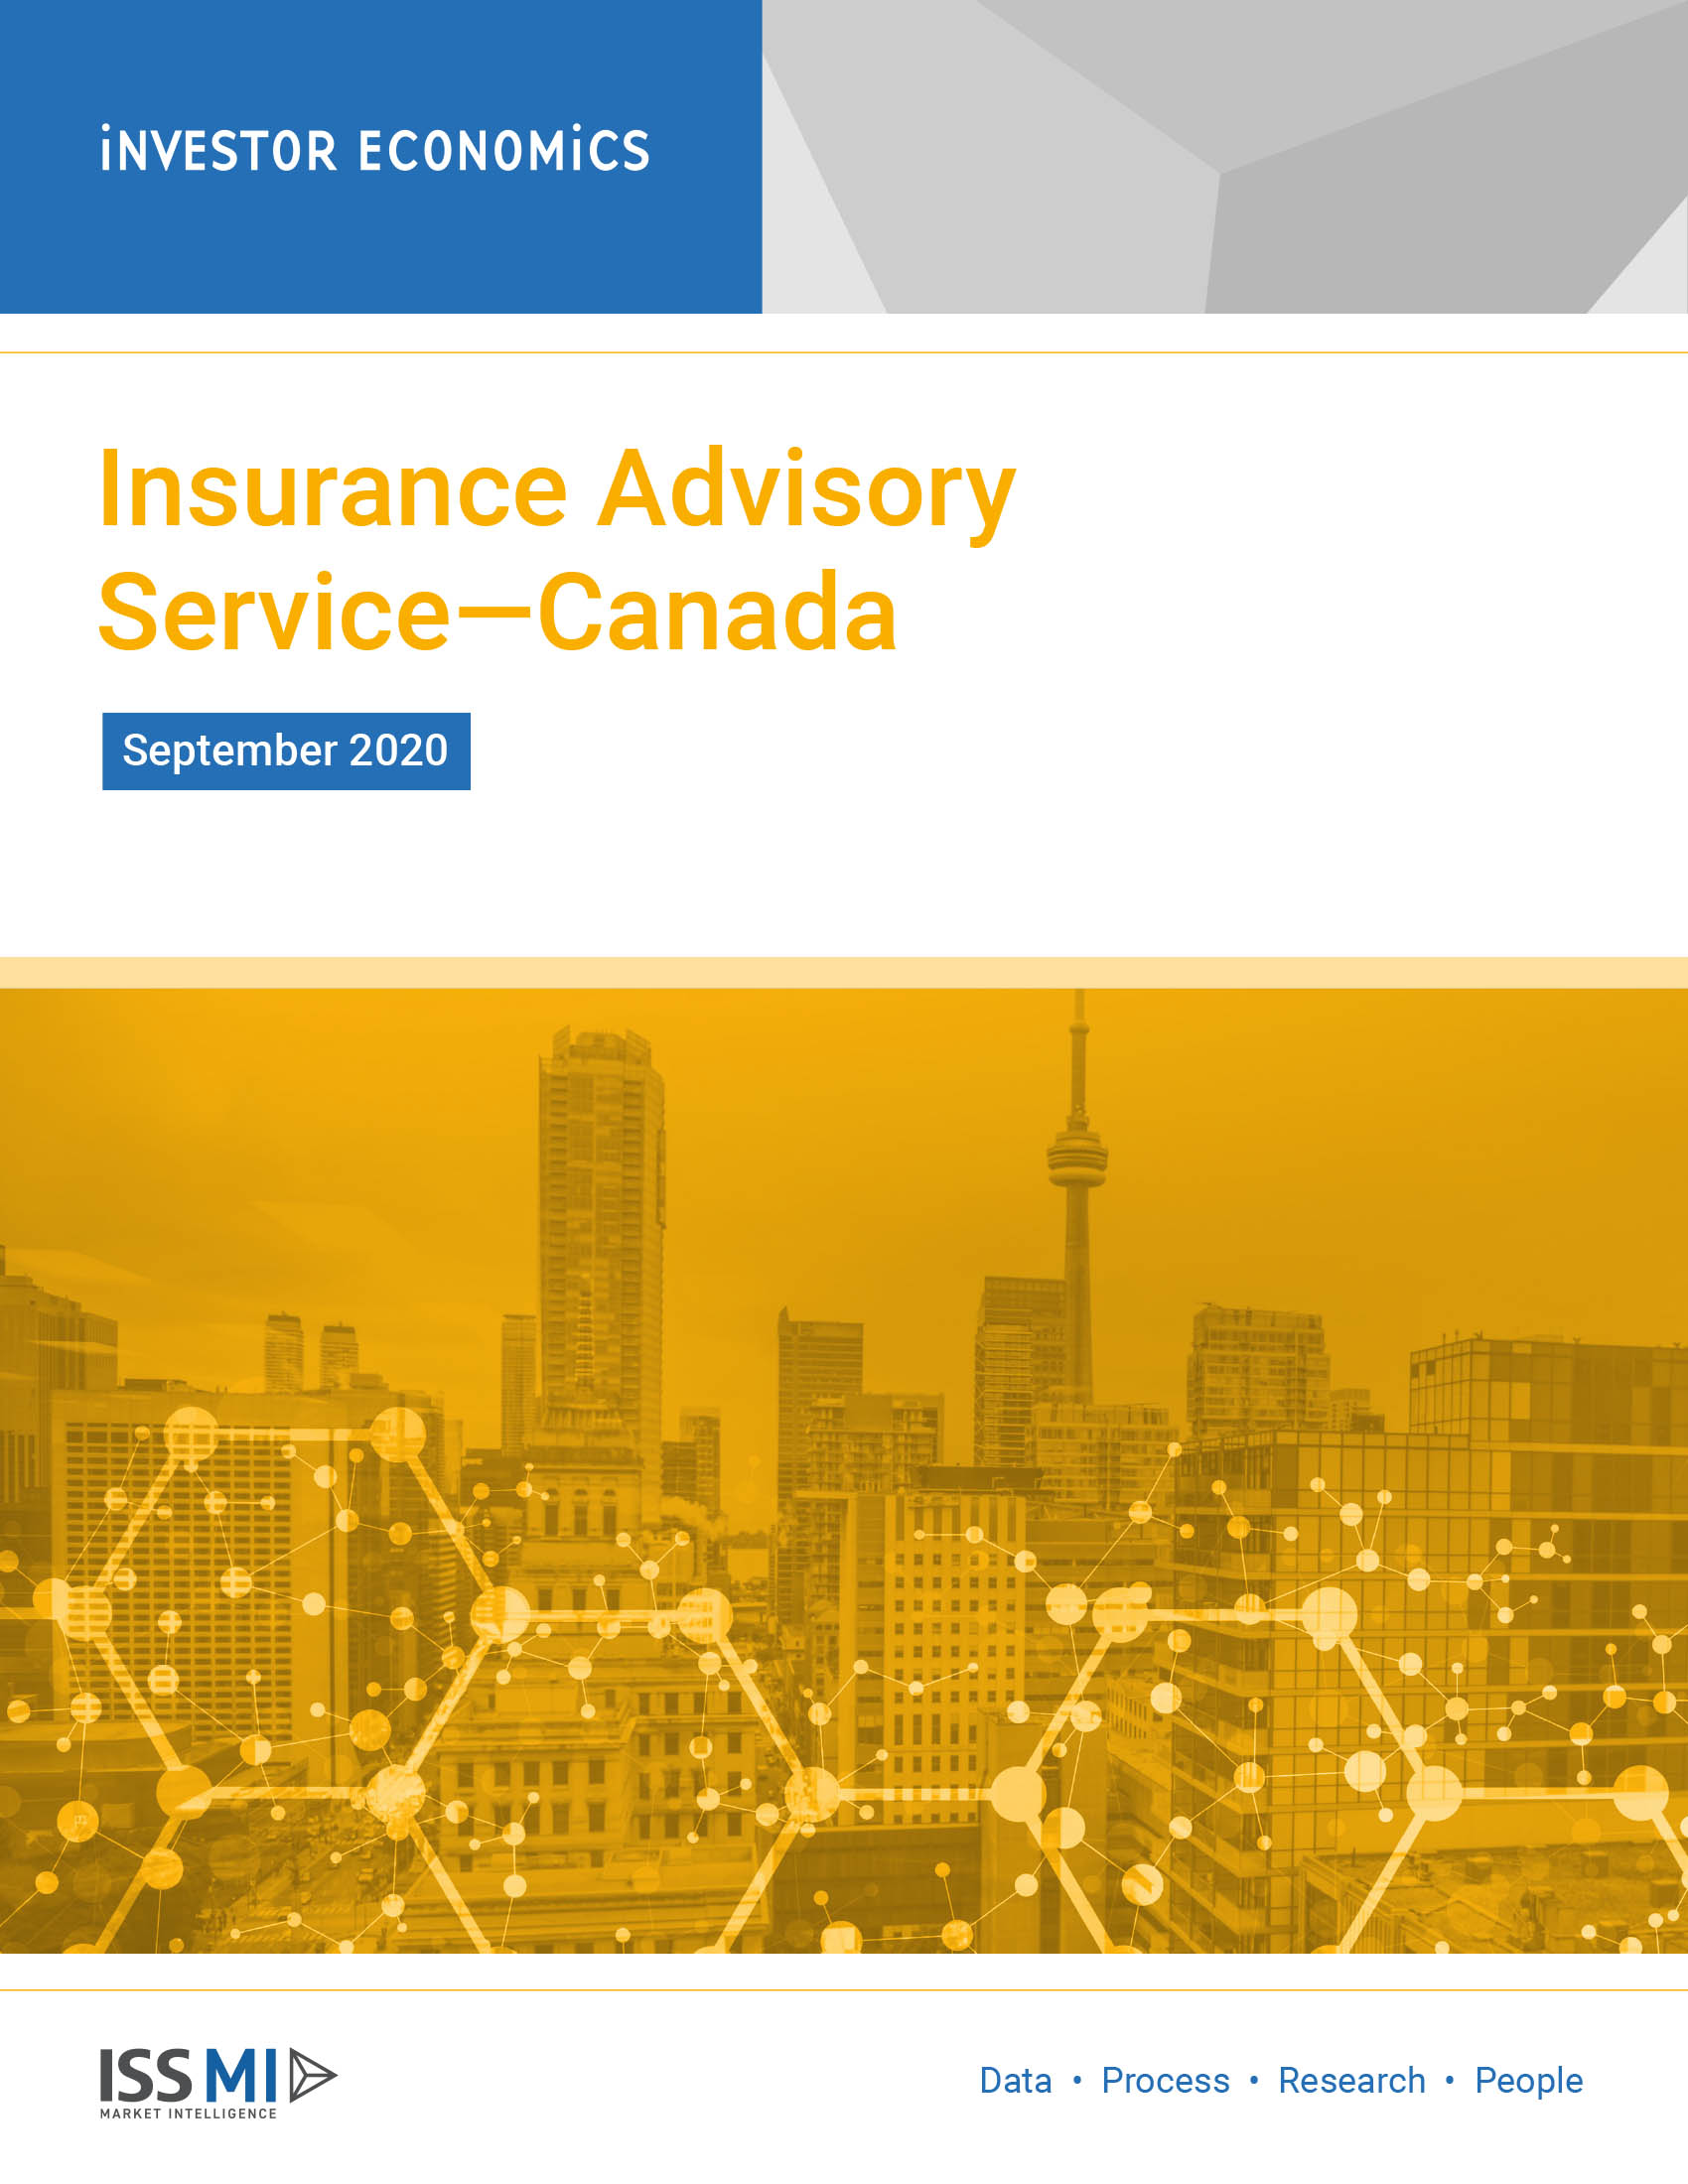 Insurance Advisory Service September 2020—Pre-release